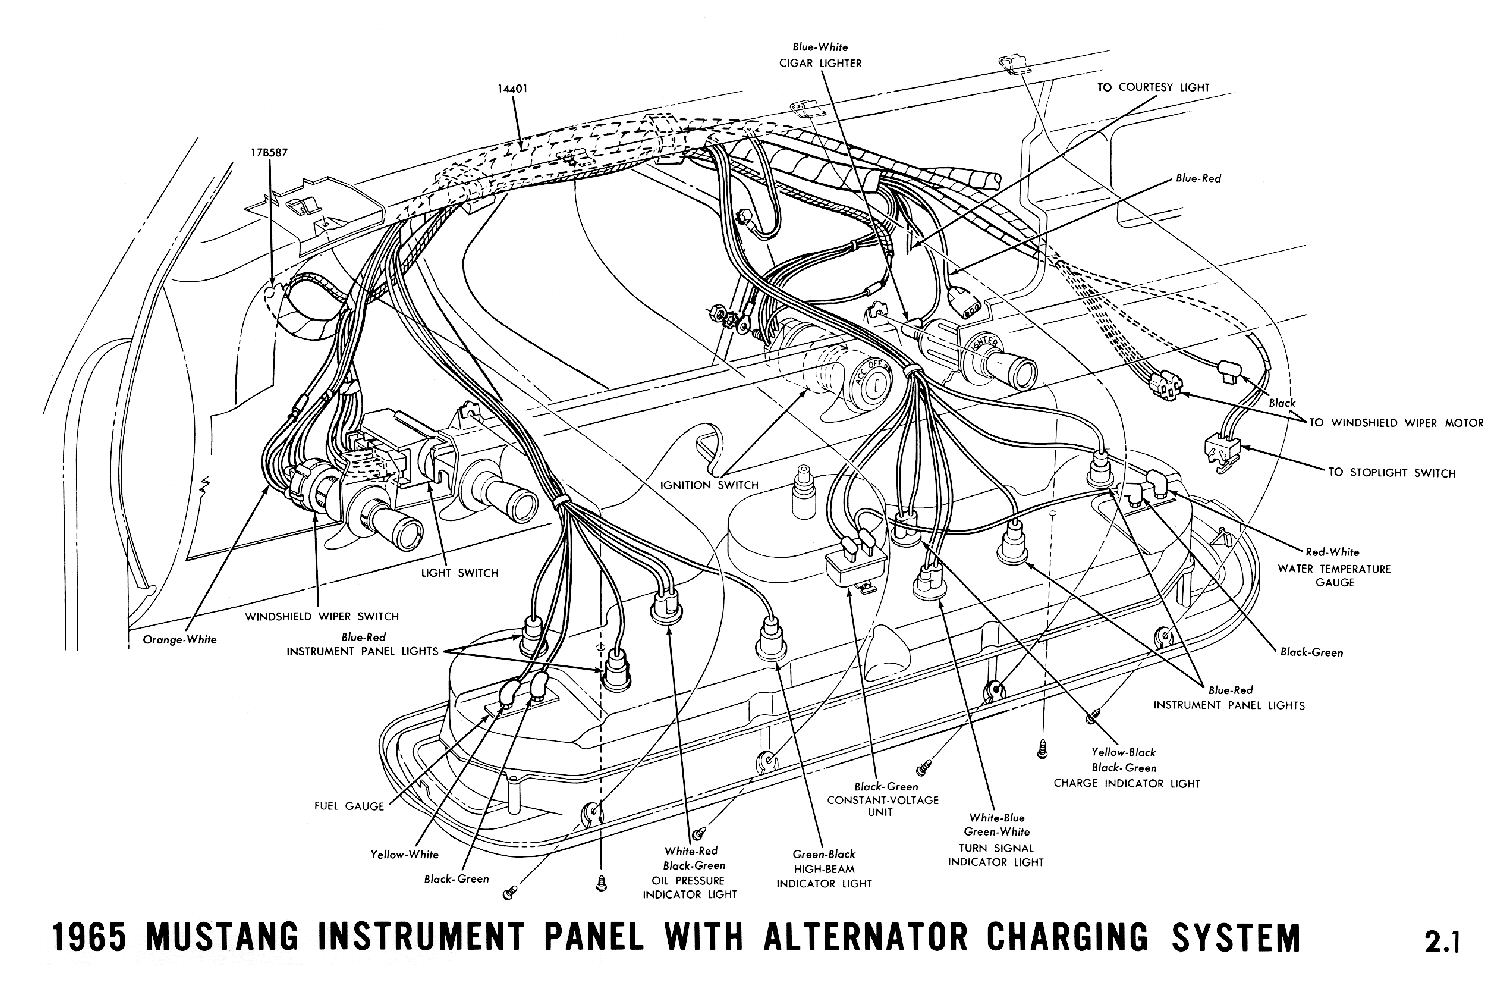 1965 mustang wiring diagrams average joe restoration mustang engine diagram 1965a 1965 mustang instrument panel with alternator